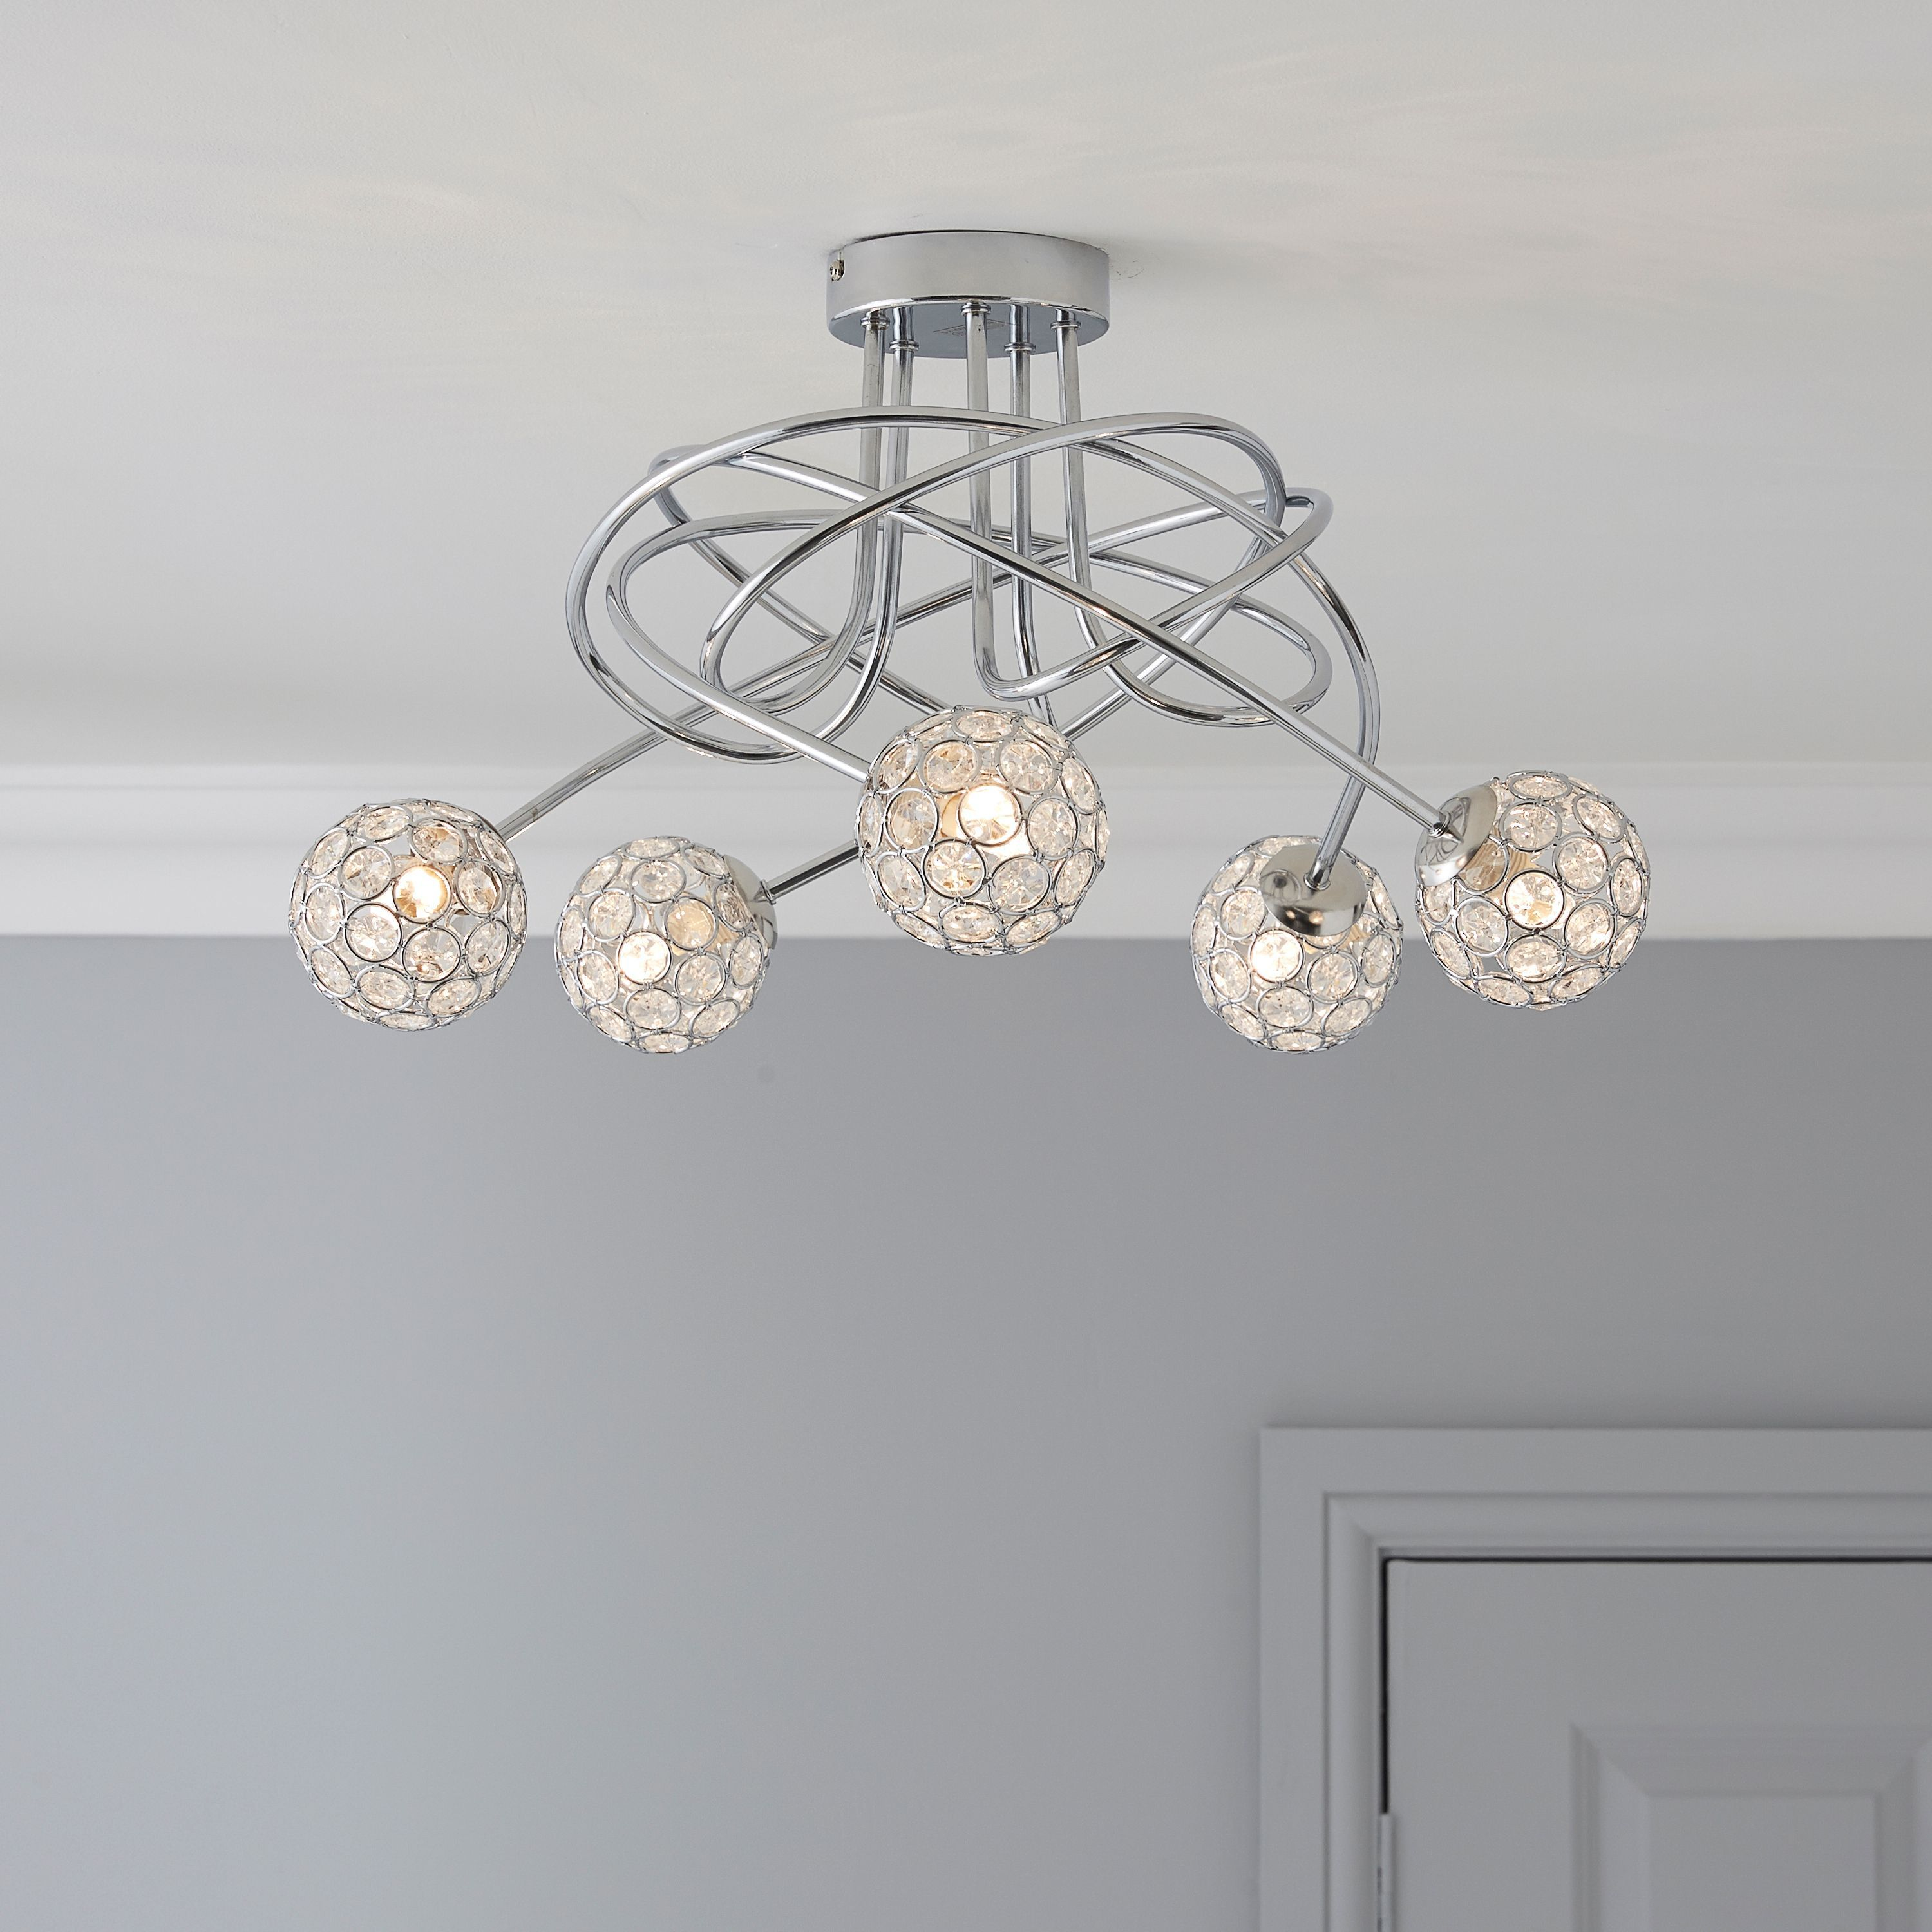 Lopez crystal circle chrome effect 5 lamp ceiling light lopez crystal circle chrome effect 5 lamp ceiling light departments diy at bq mozeypictures Choice Image